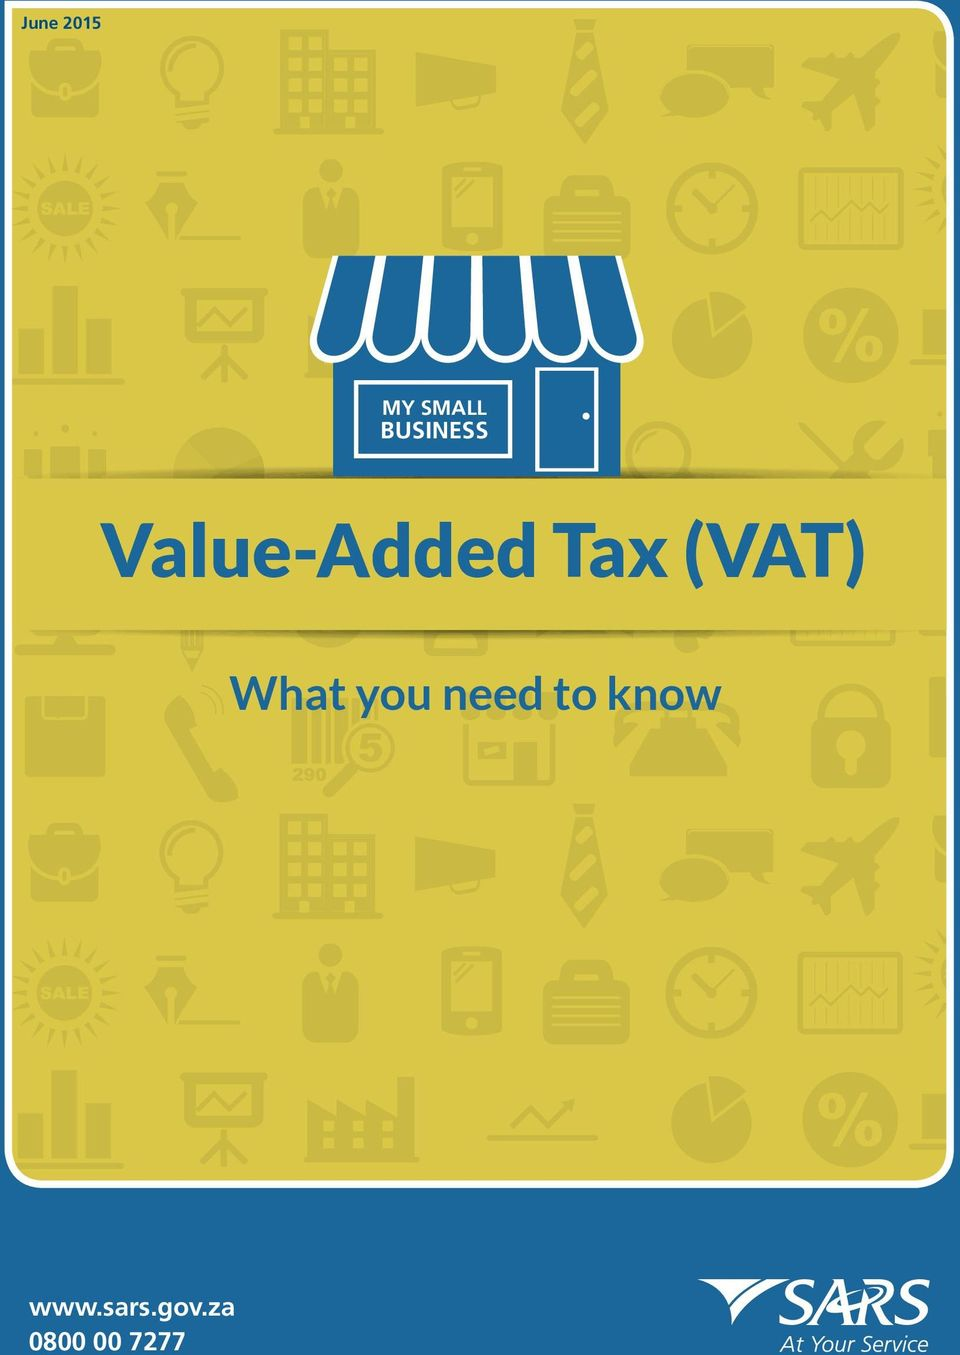 (VAT) What you need to